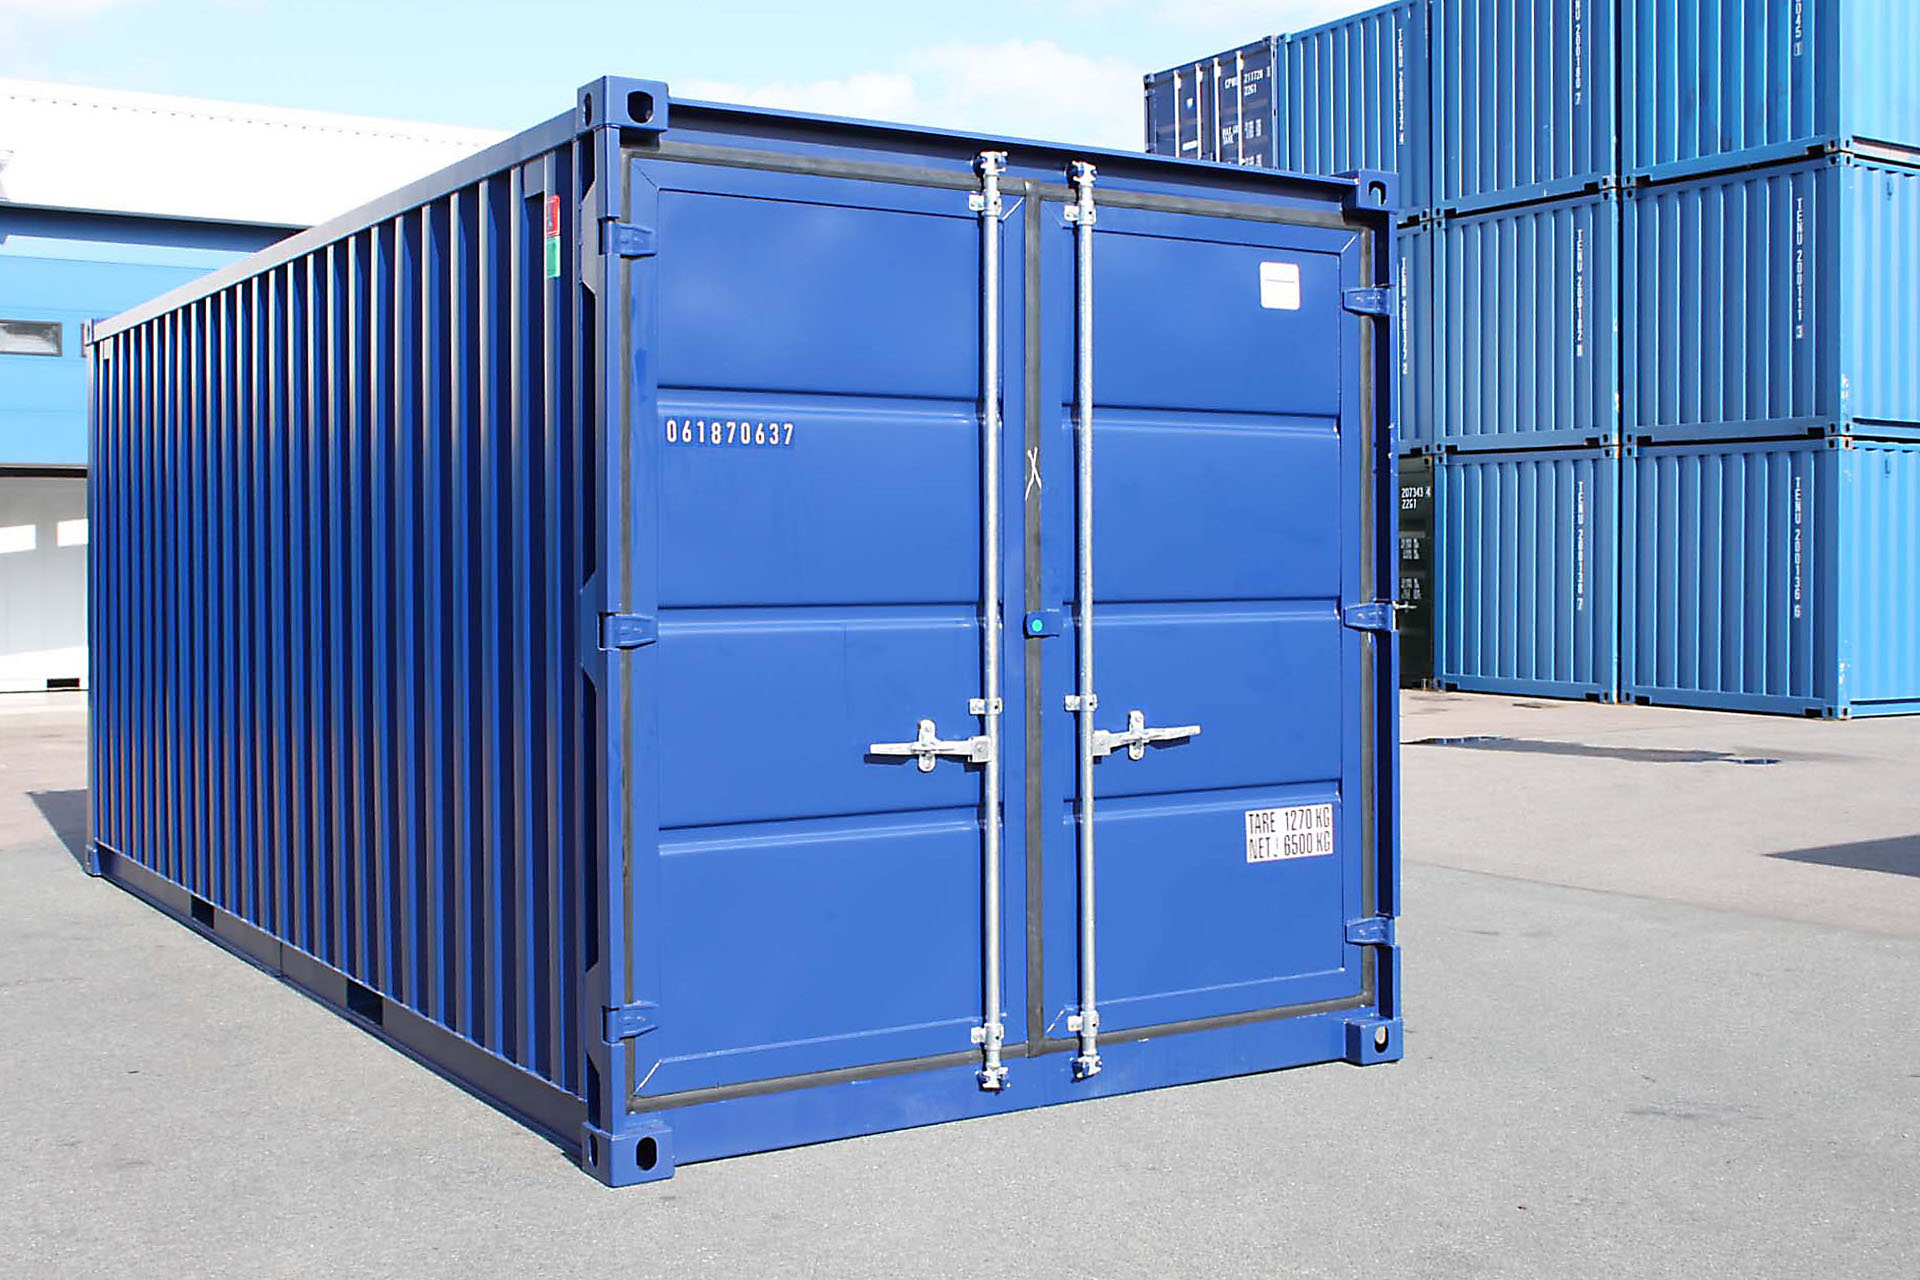 20 ft Opslagcontainer Containex blauw